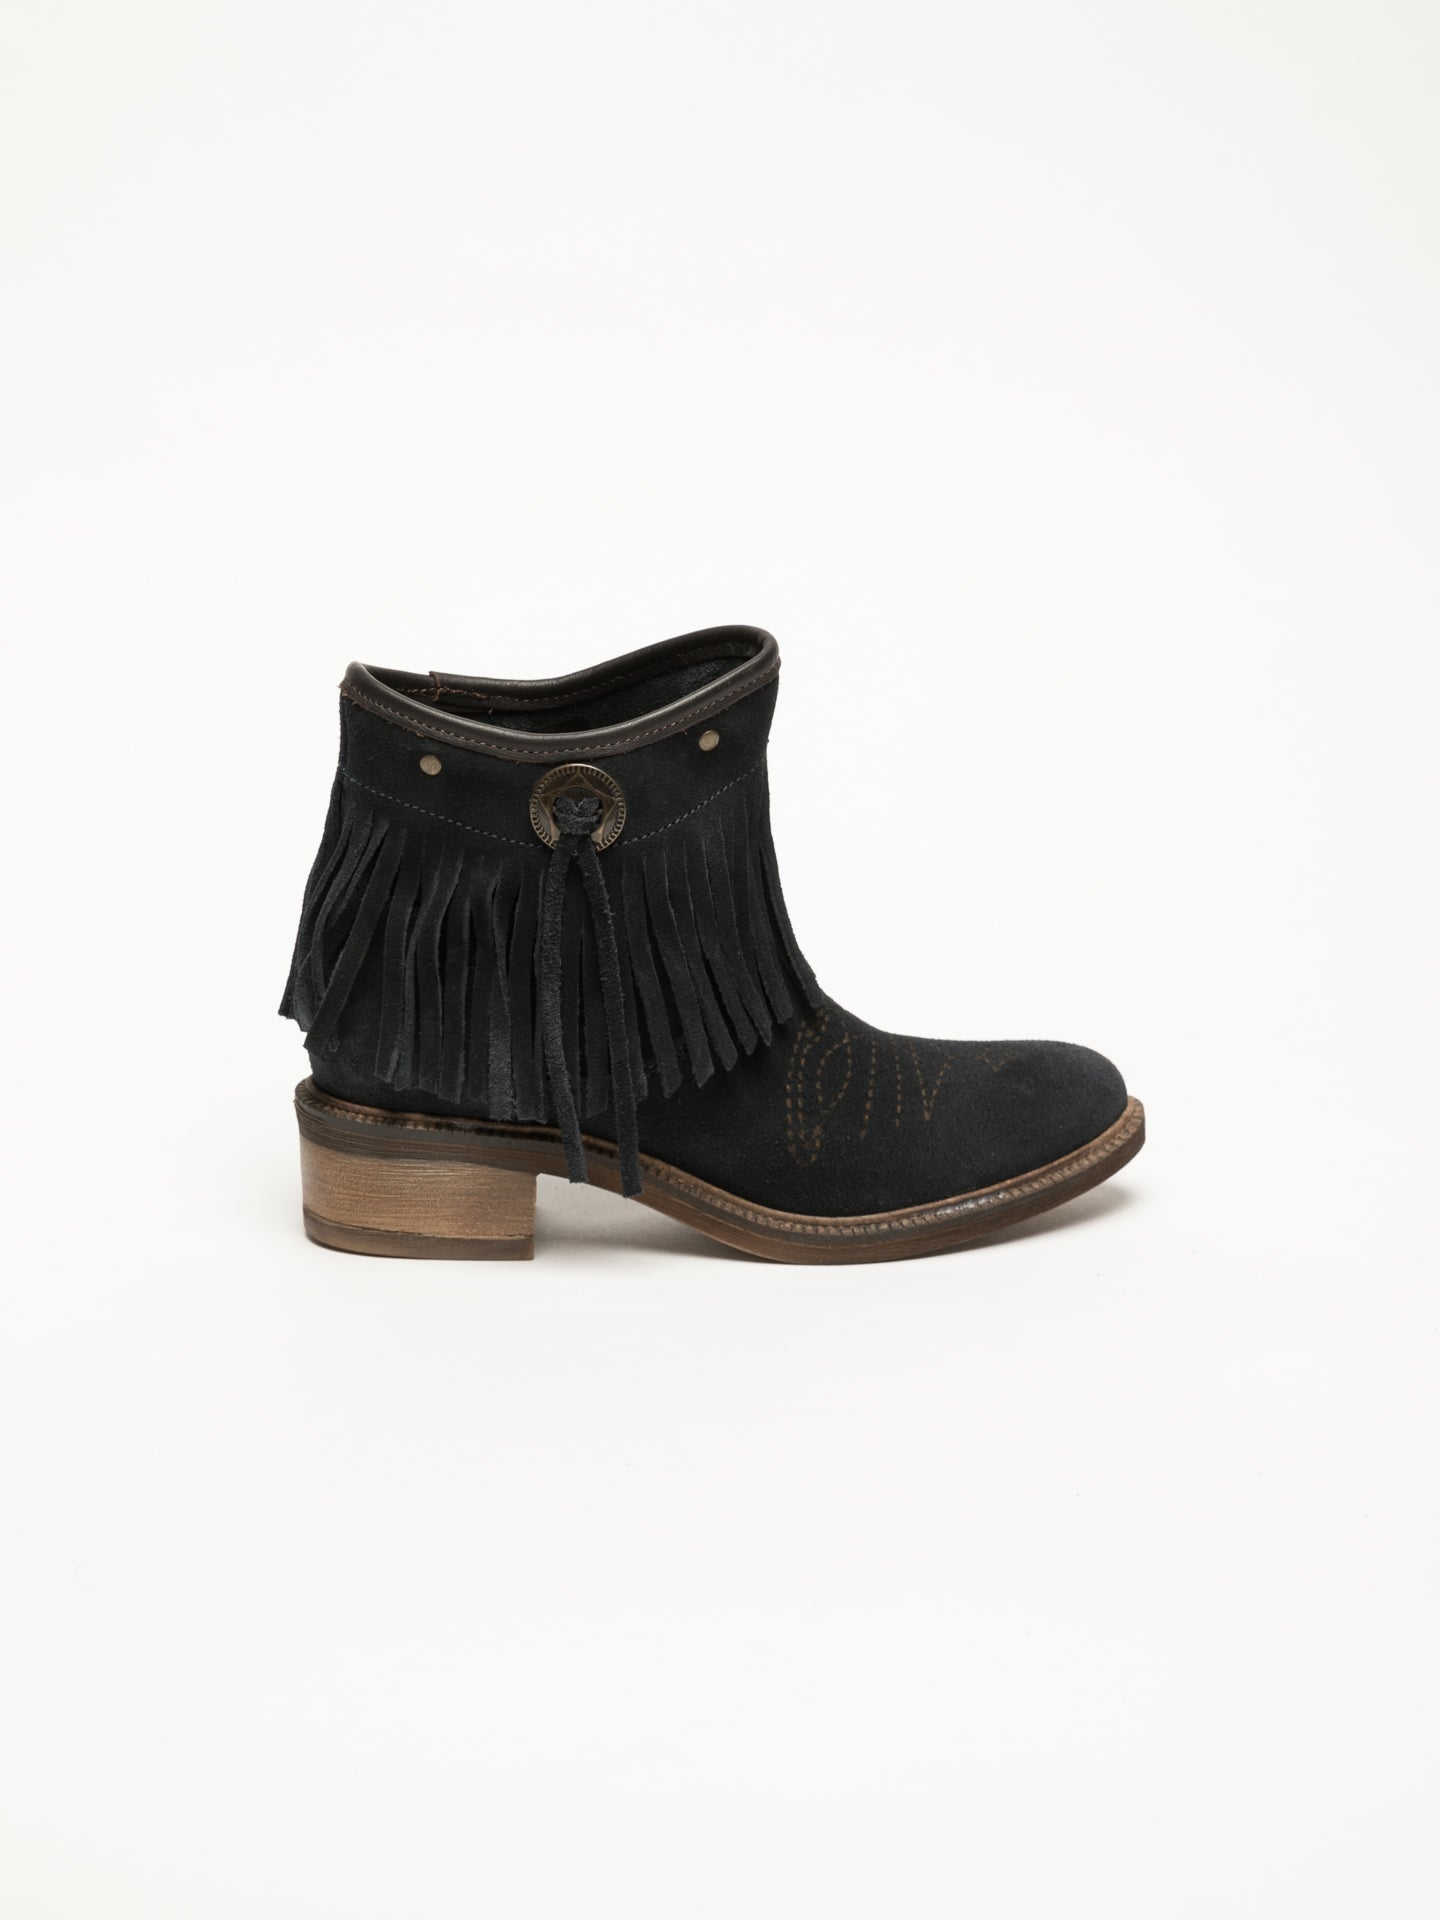 Foreva Blue Fringed Ankle Boots